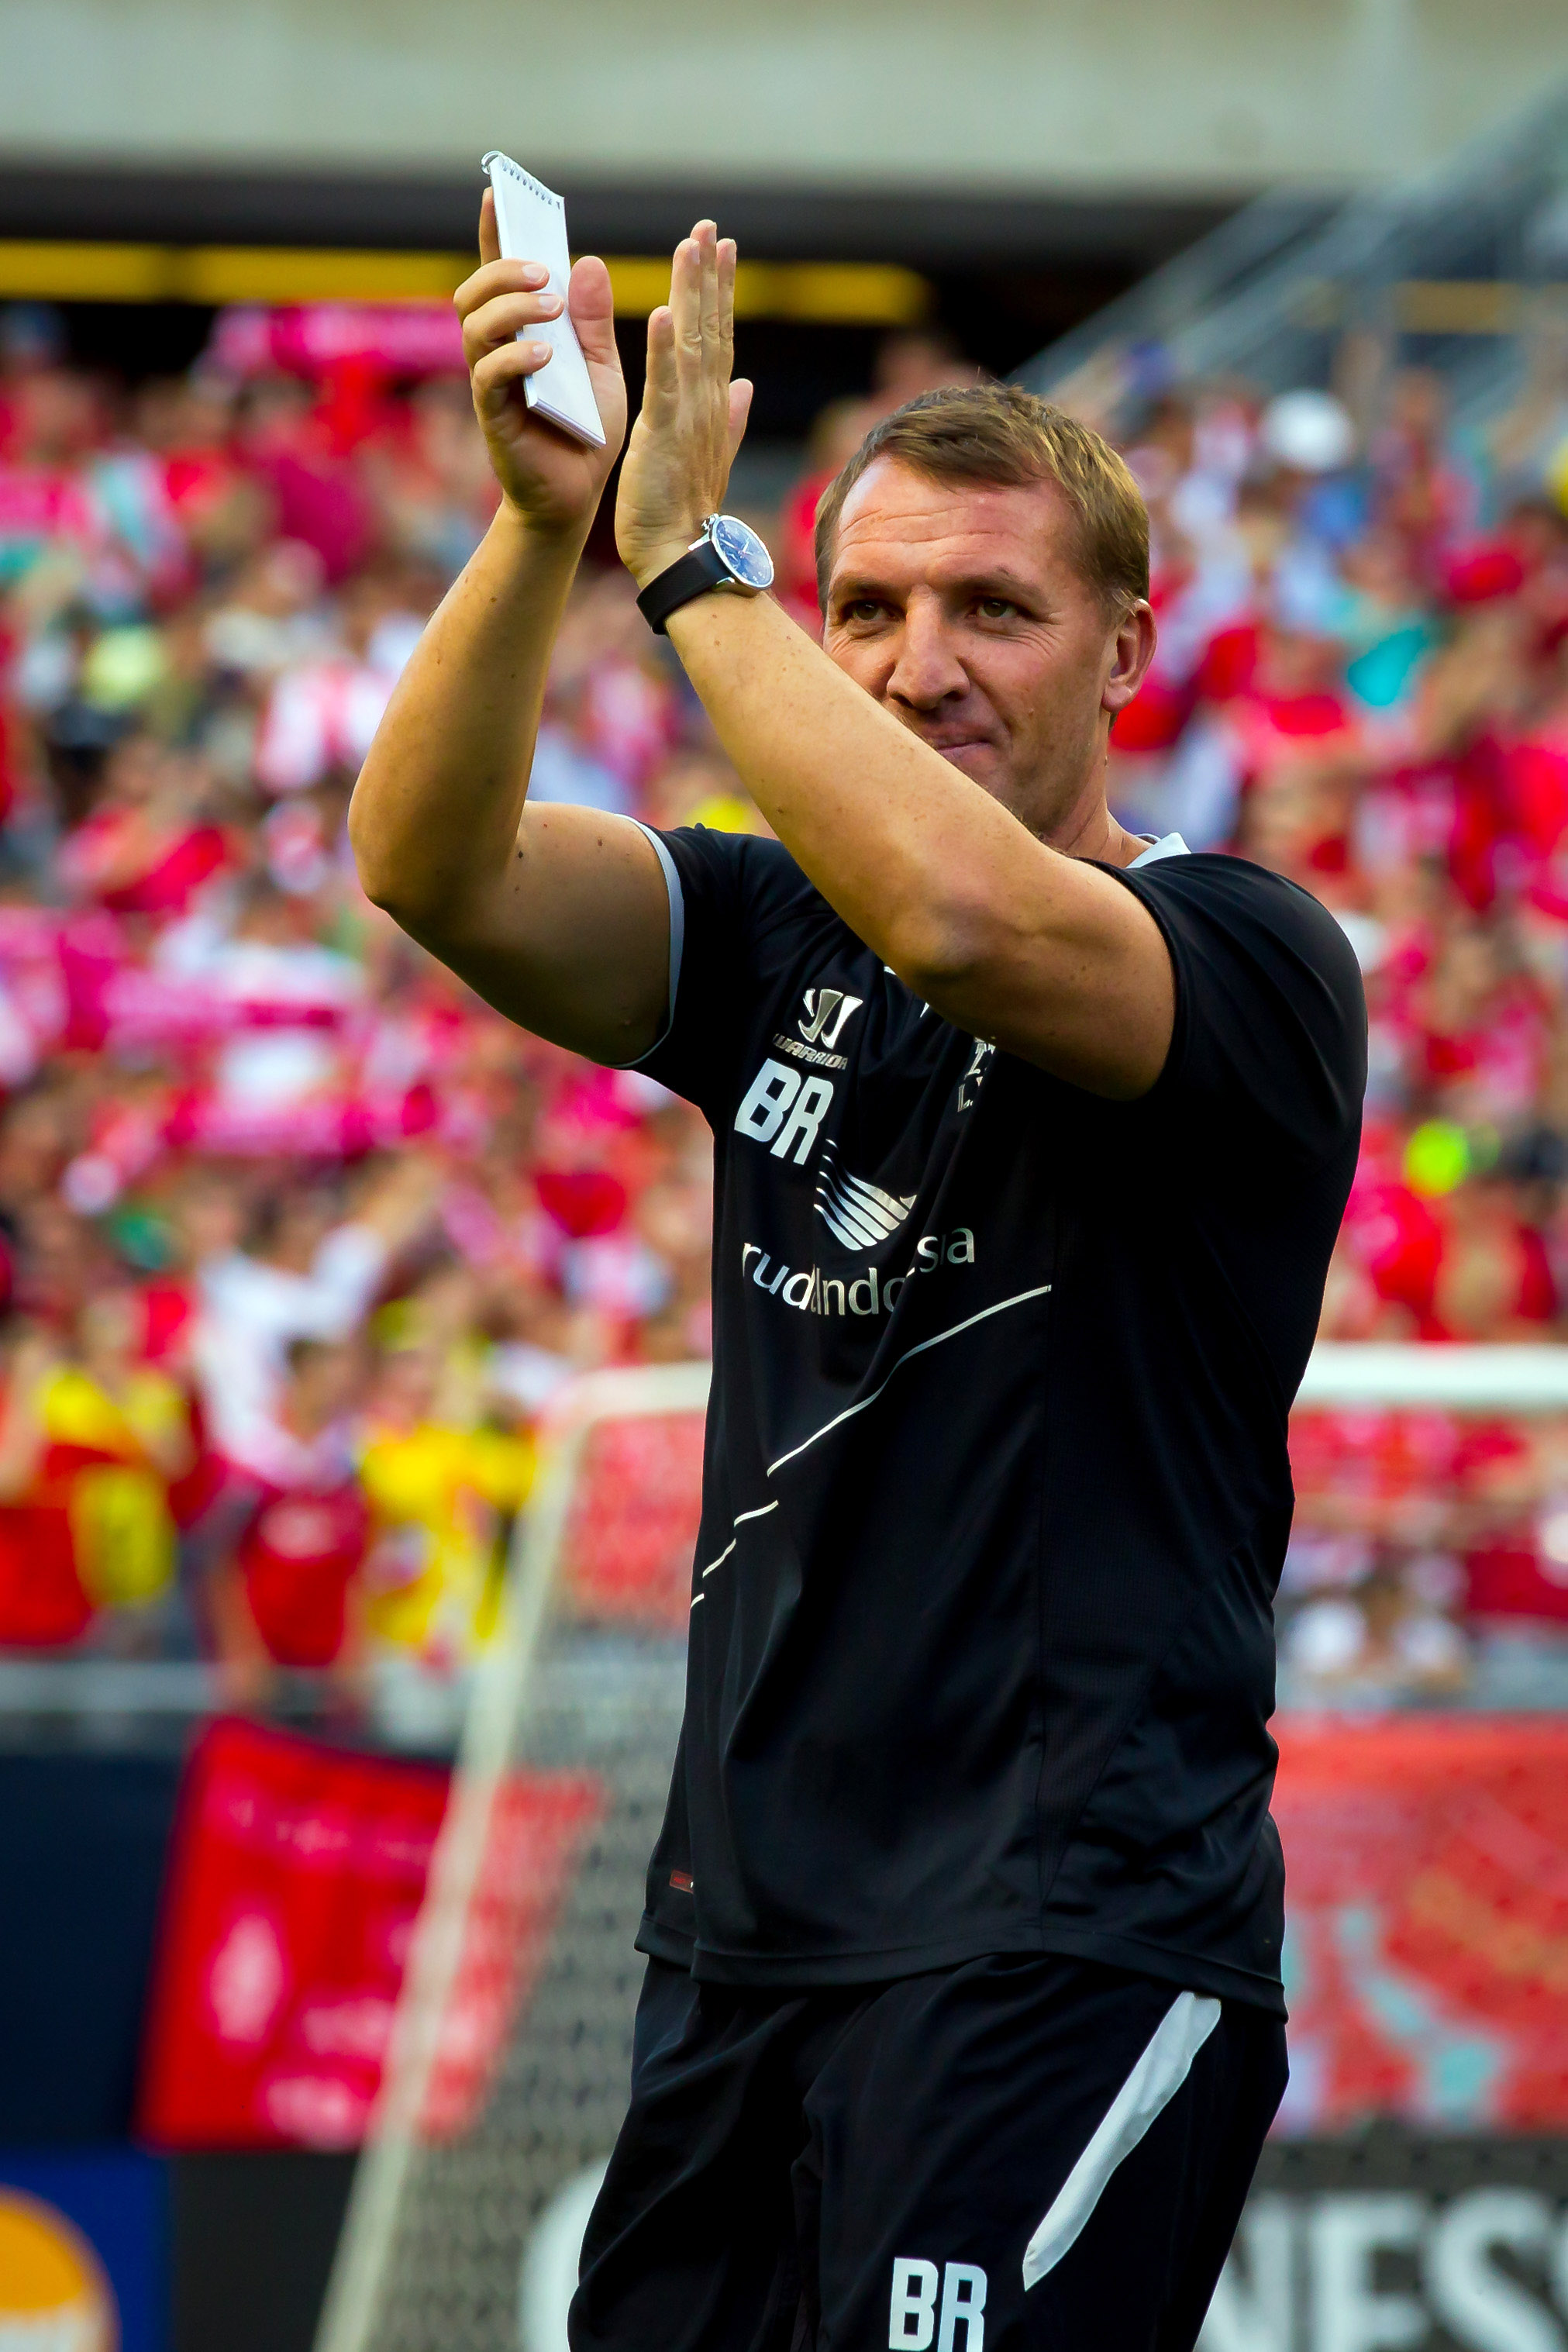 This is Liverpool coach Brendan Rodgers.  This isn't the same person the Rangers might draft.